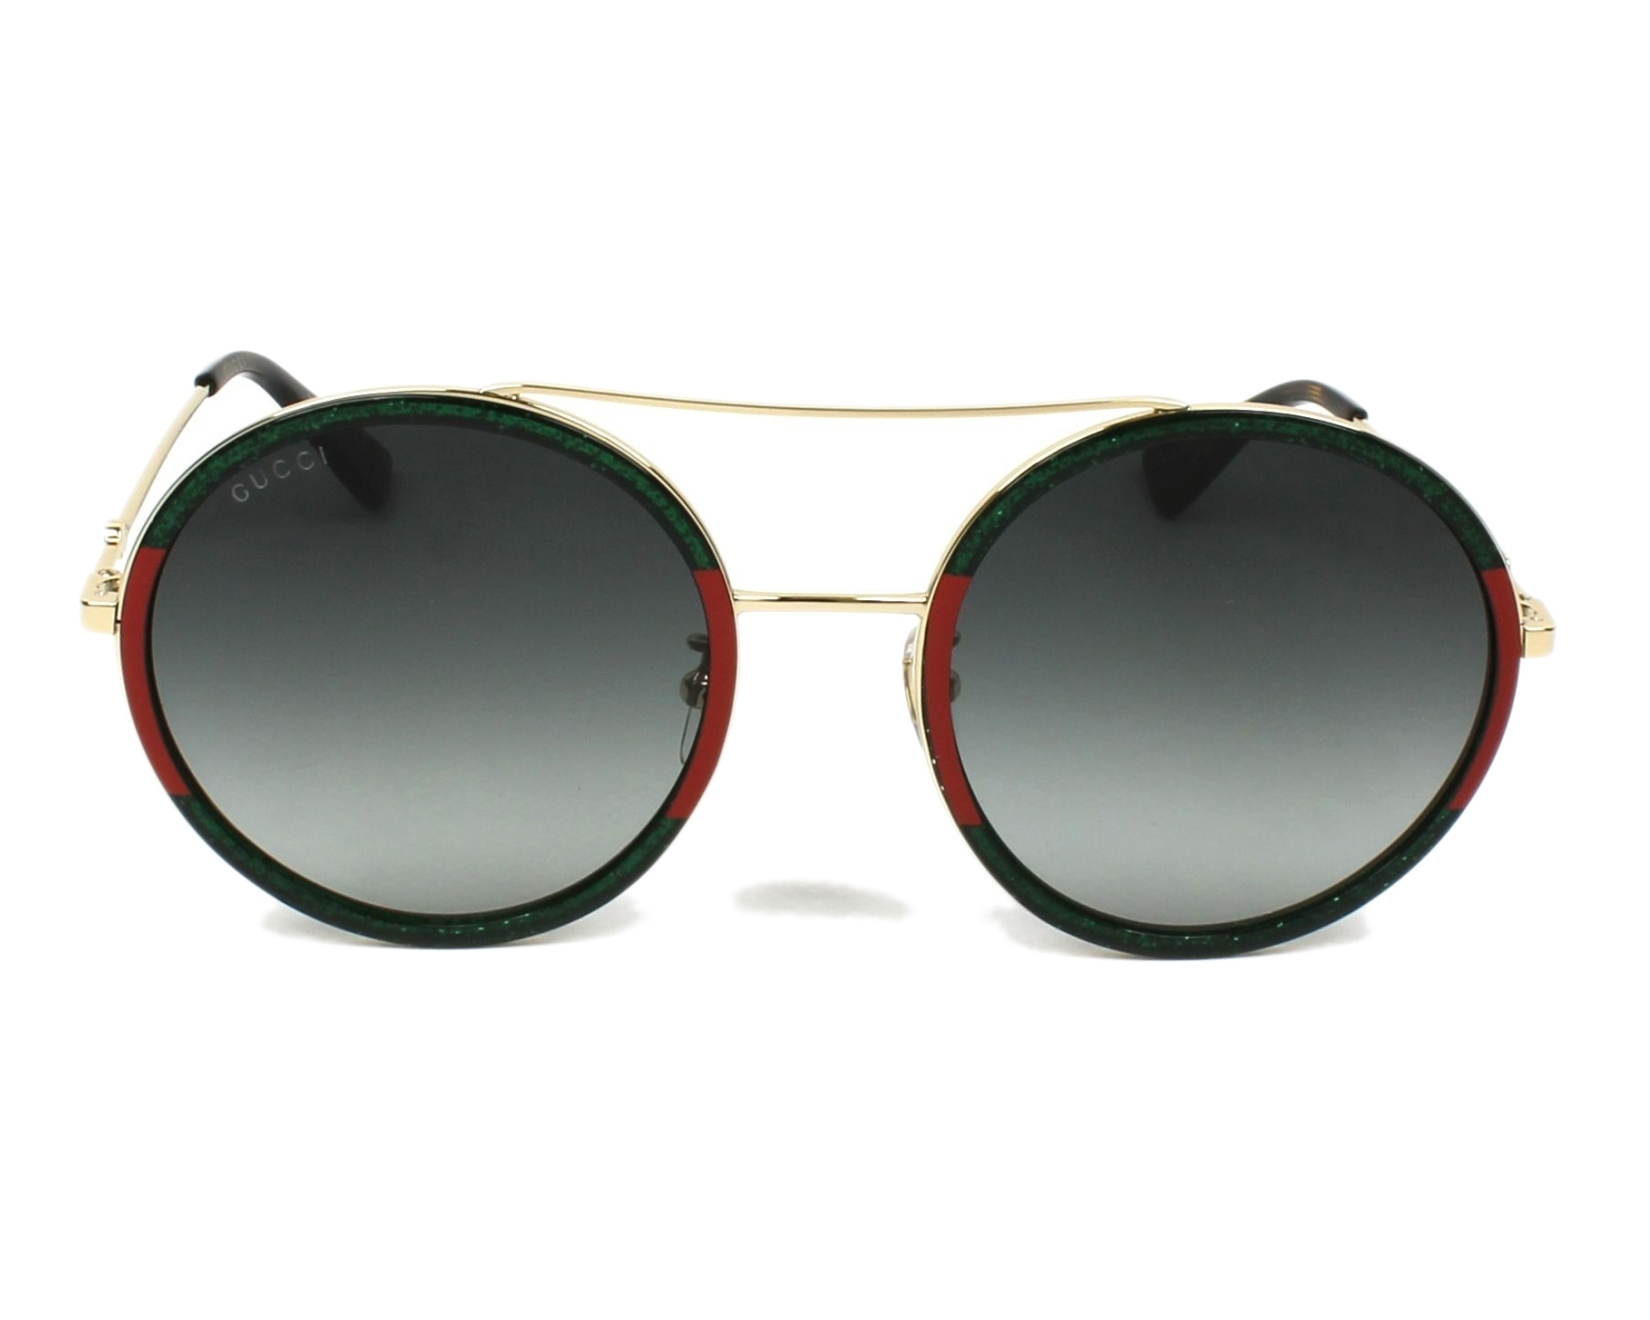 9745ad648aadad Sunglasses gucci green red front view jpg 1650x1320 Lentes gucci